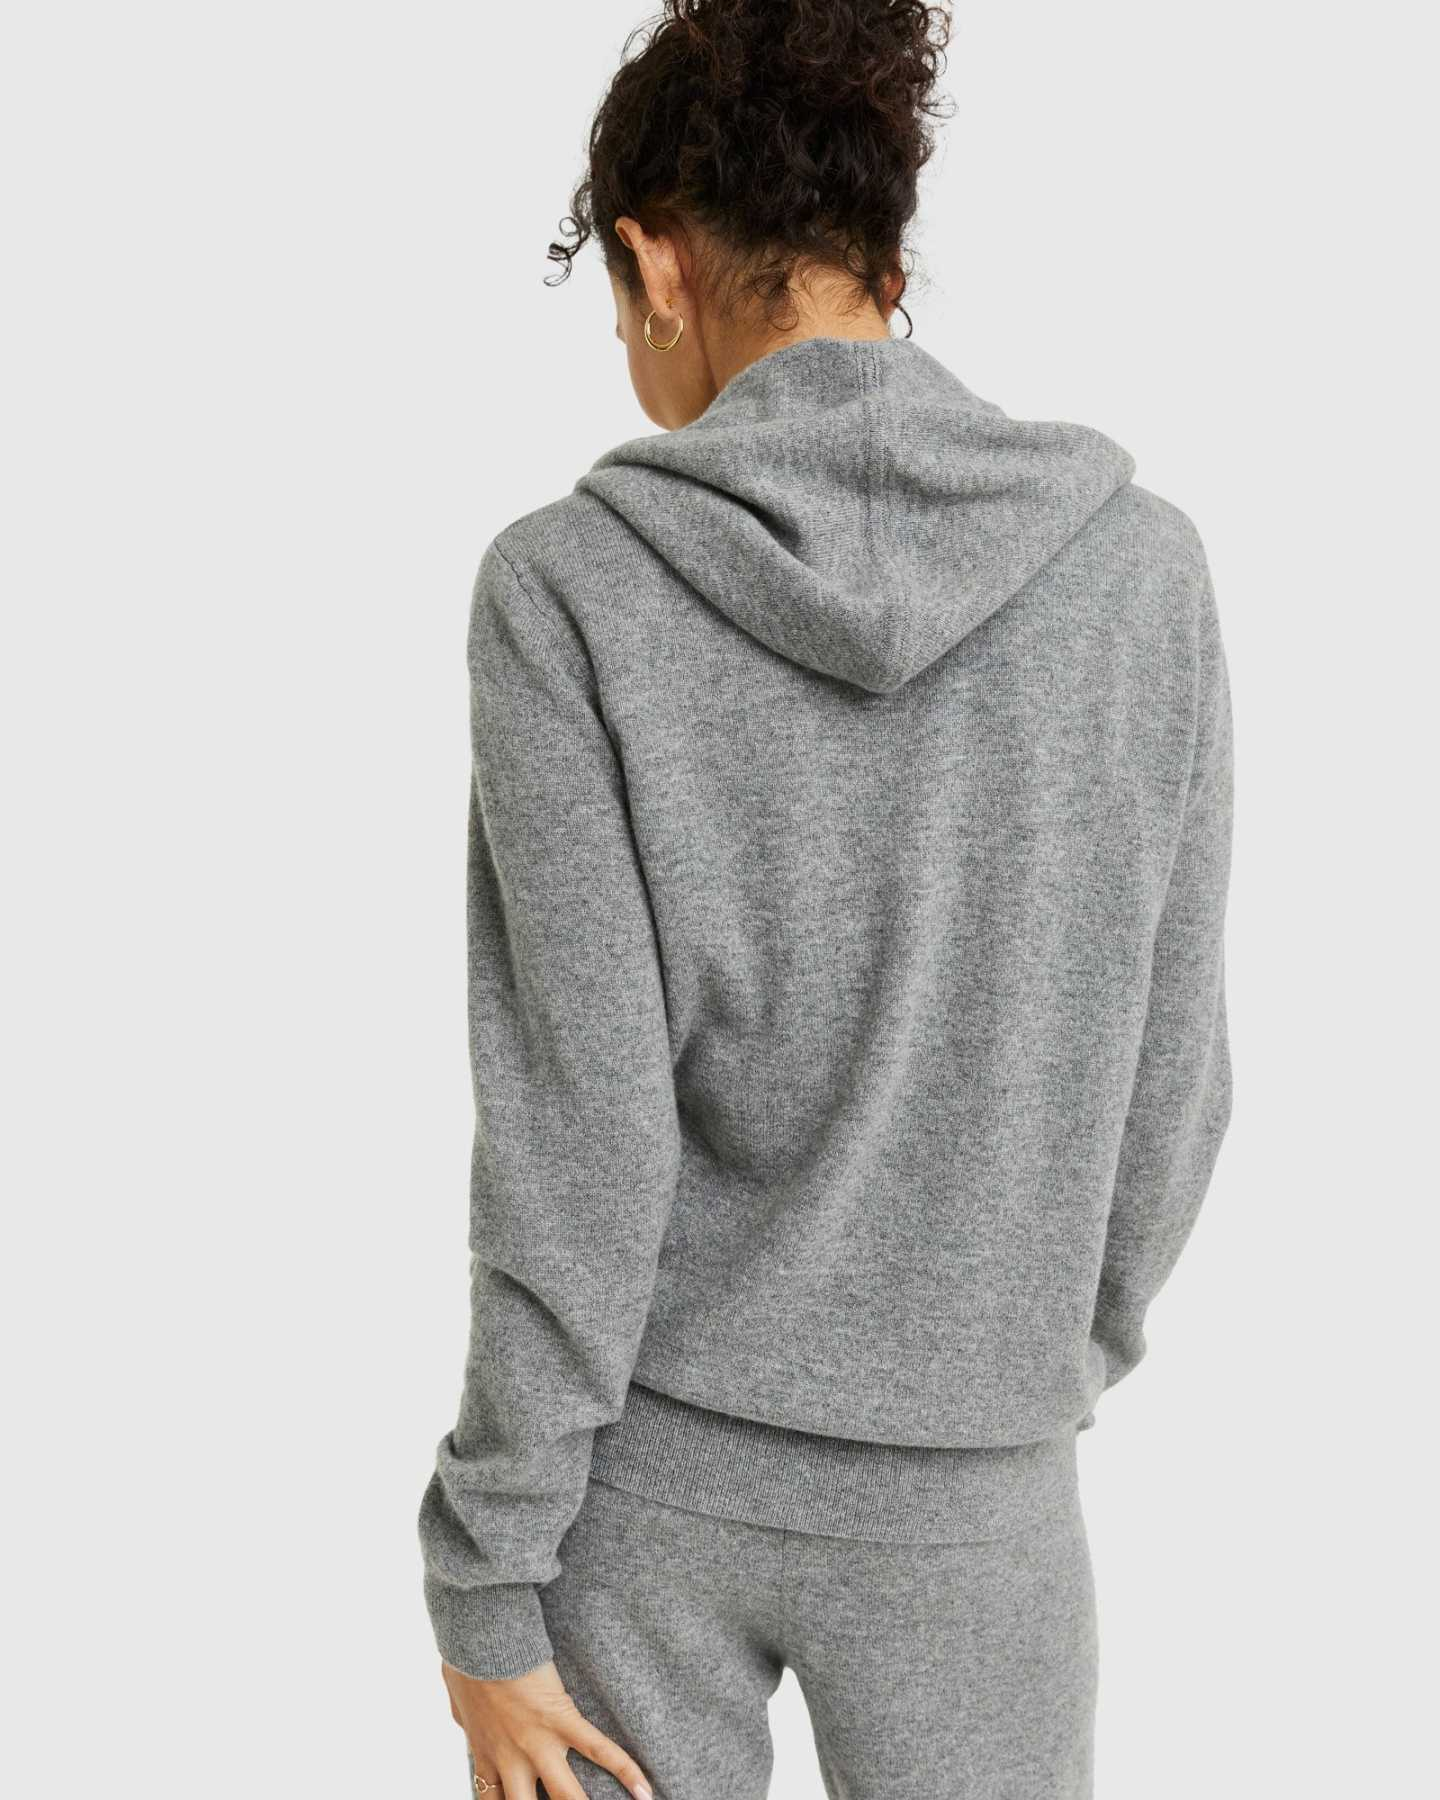 Woman wearing grey cashmere zip hoodie and matching cashmere sweatpants from back